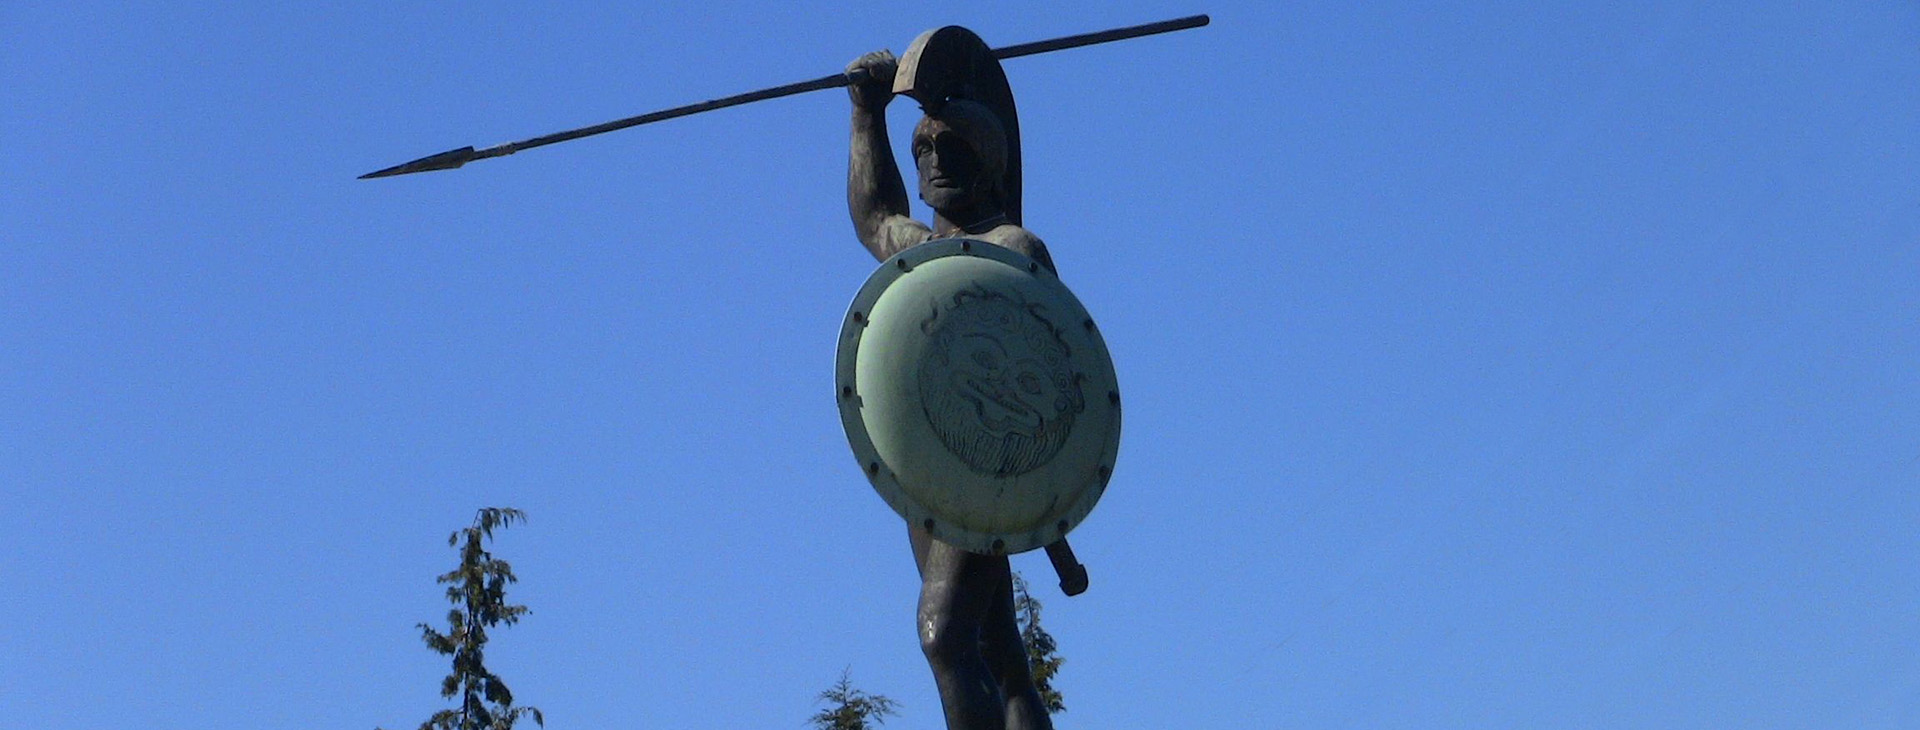 King Leonidas statue / Battle of Thermopylae monument